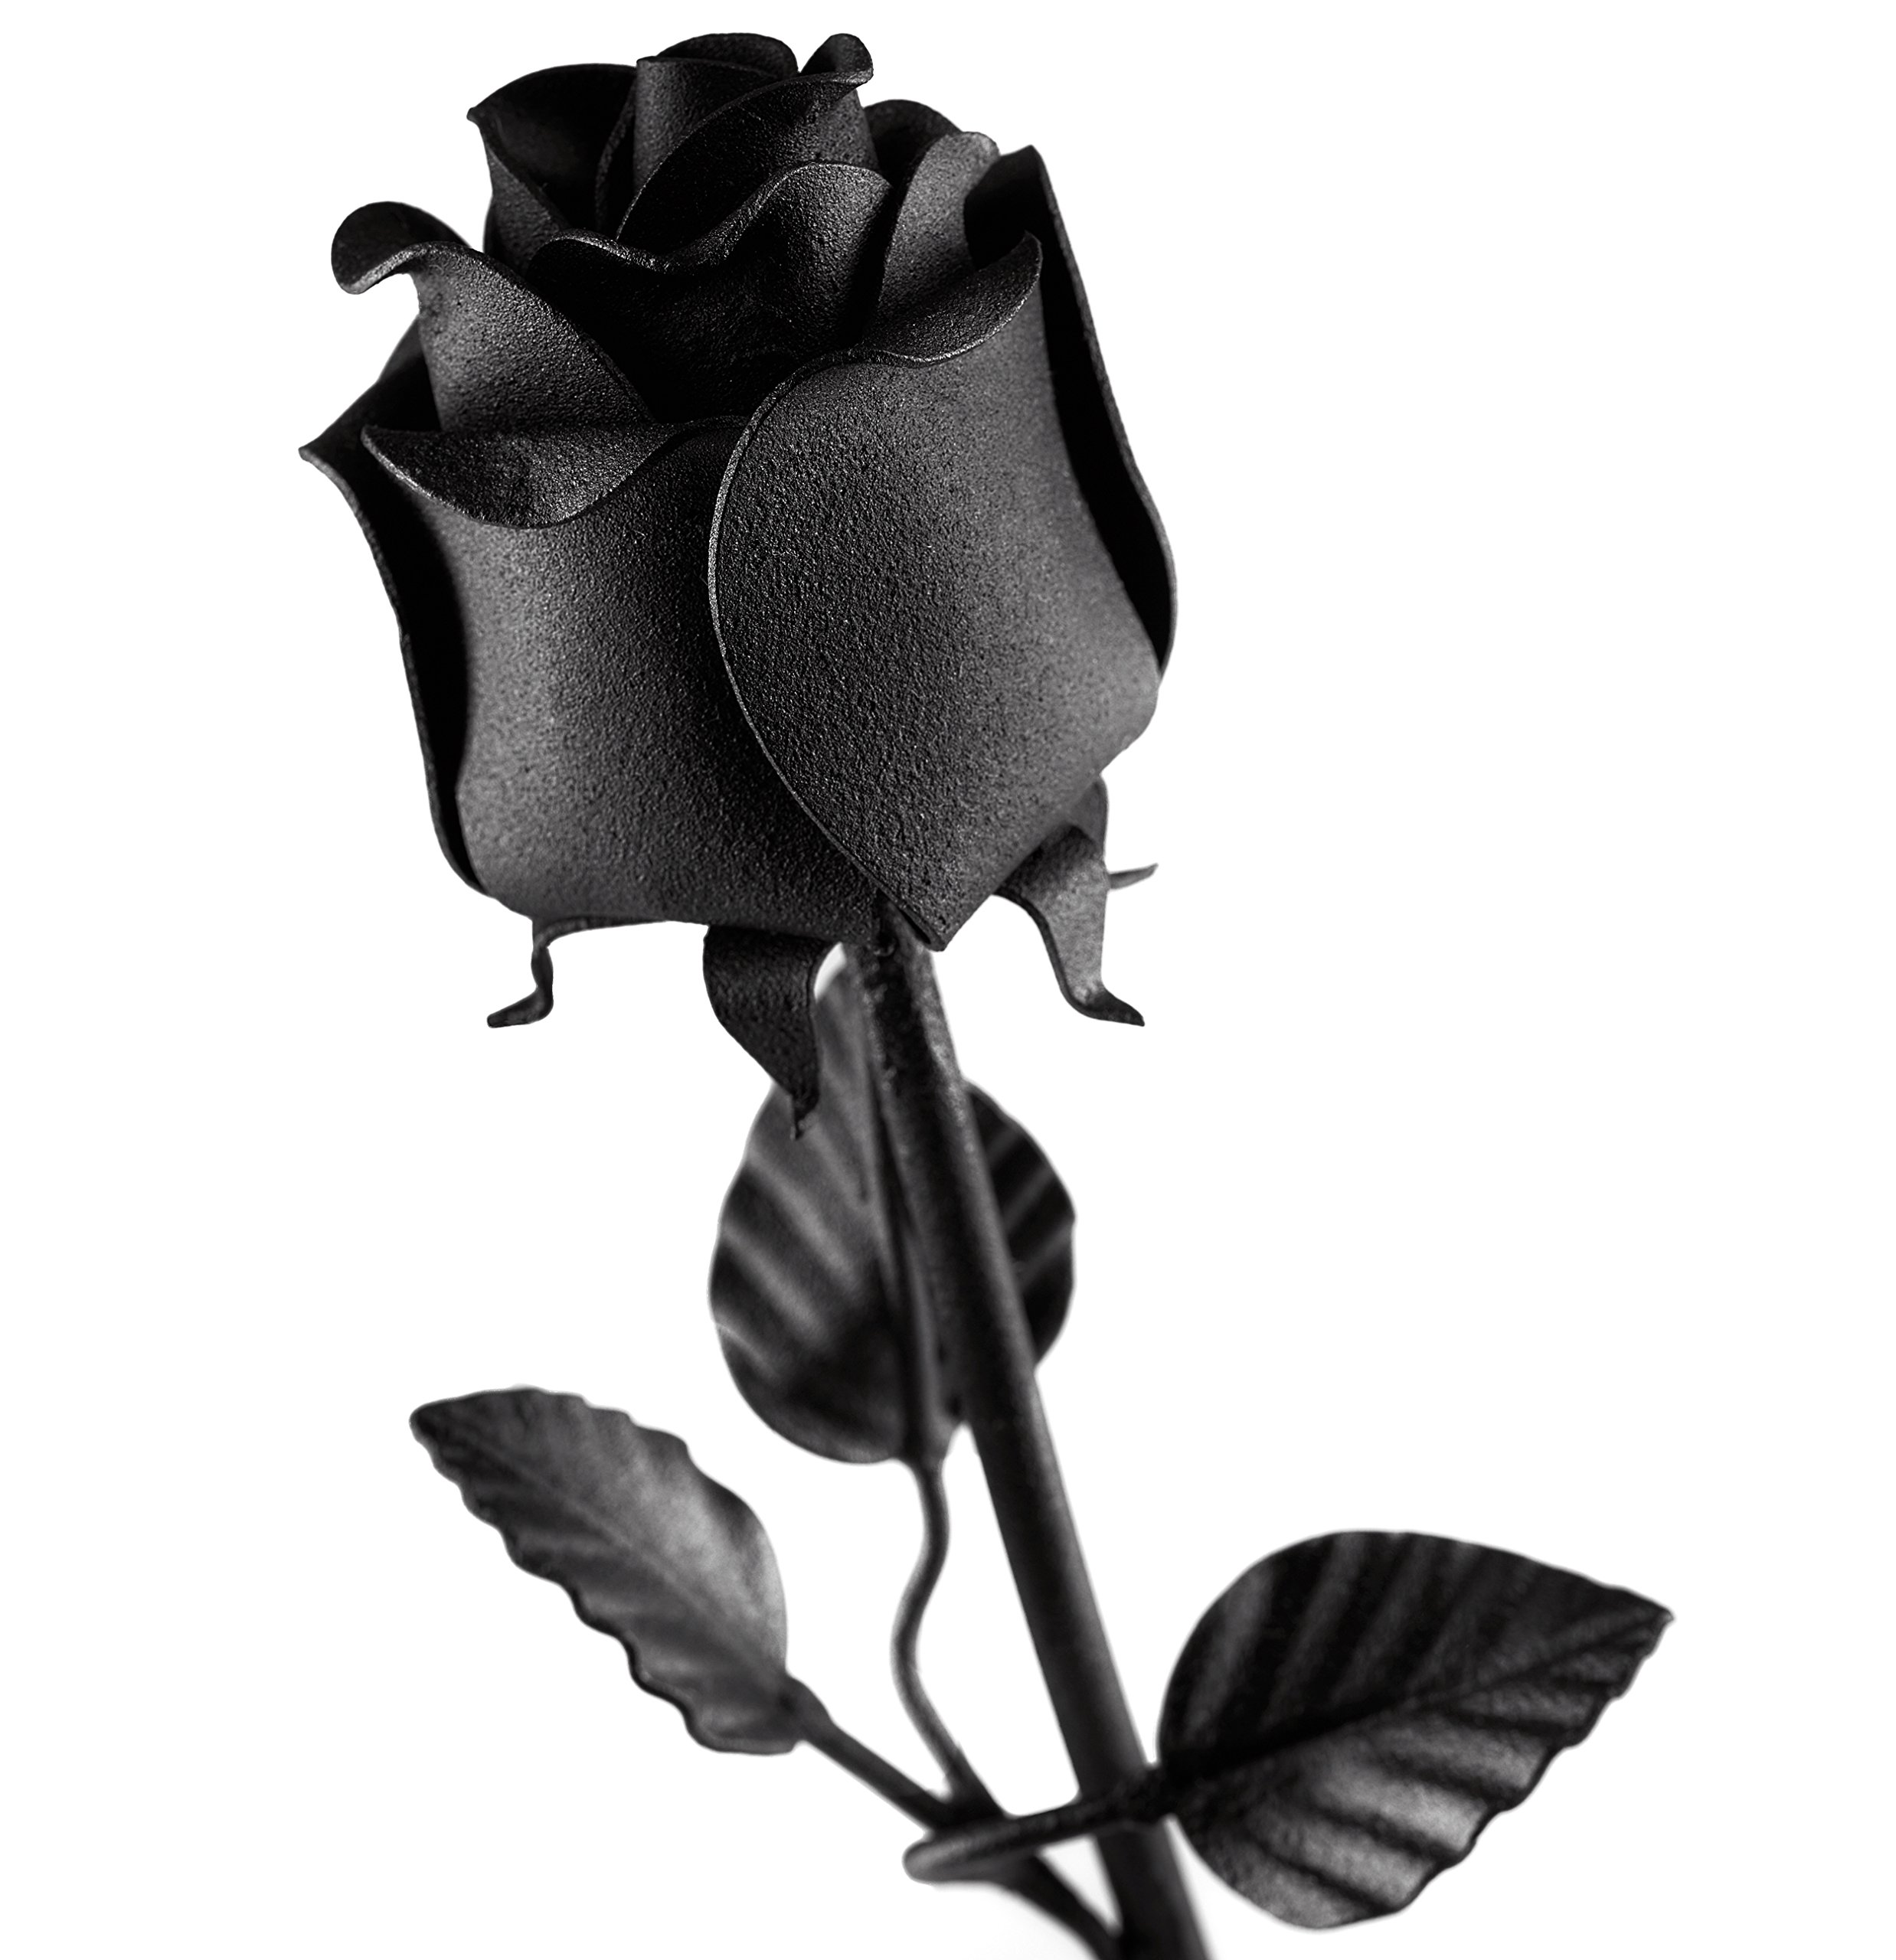 Hand-Forged-Iron-Rose-100-Wrought-Iron-Flower-In-Black-Unique-Anniversary-Gift